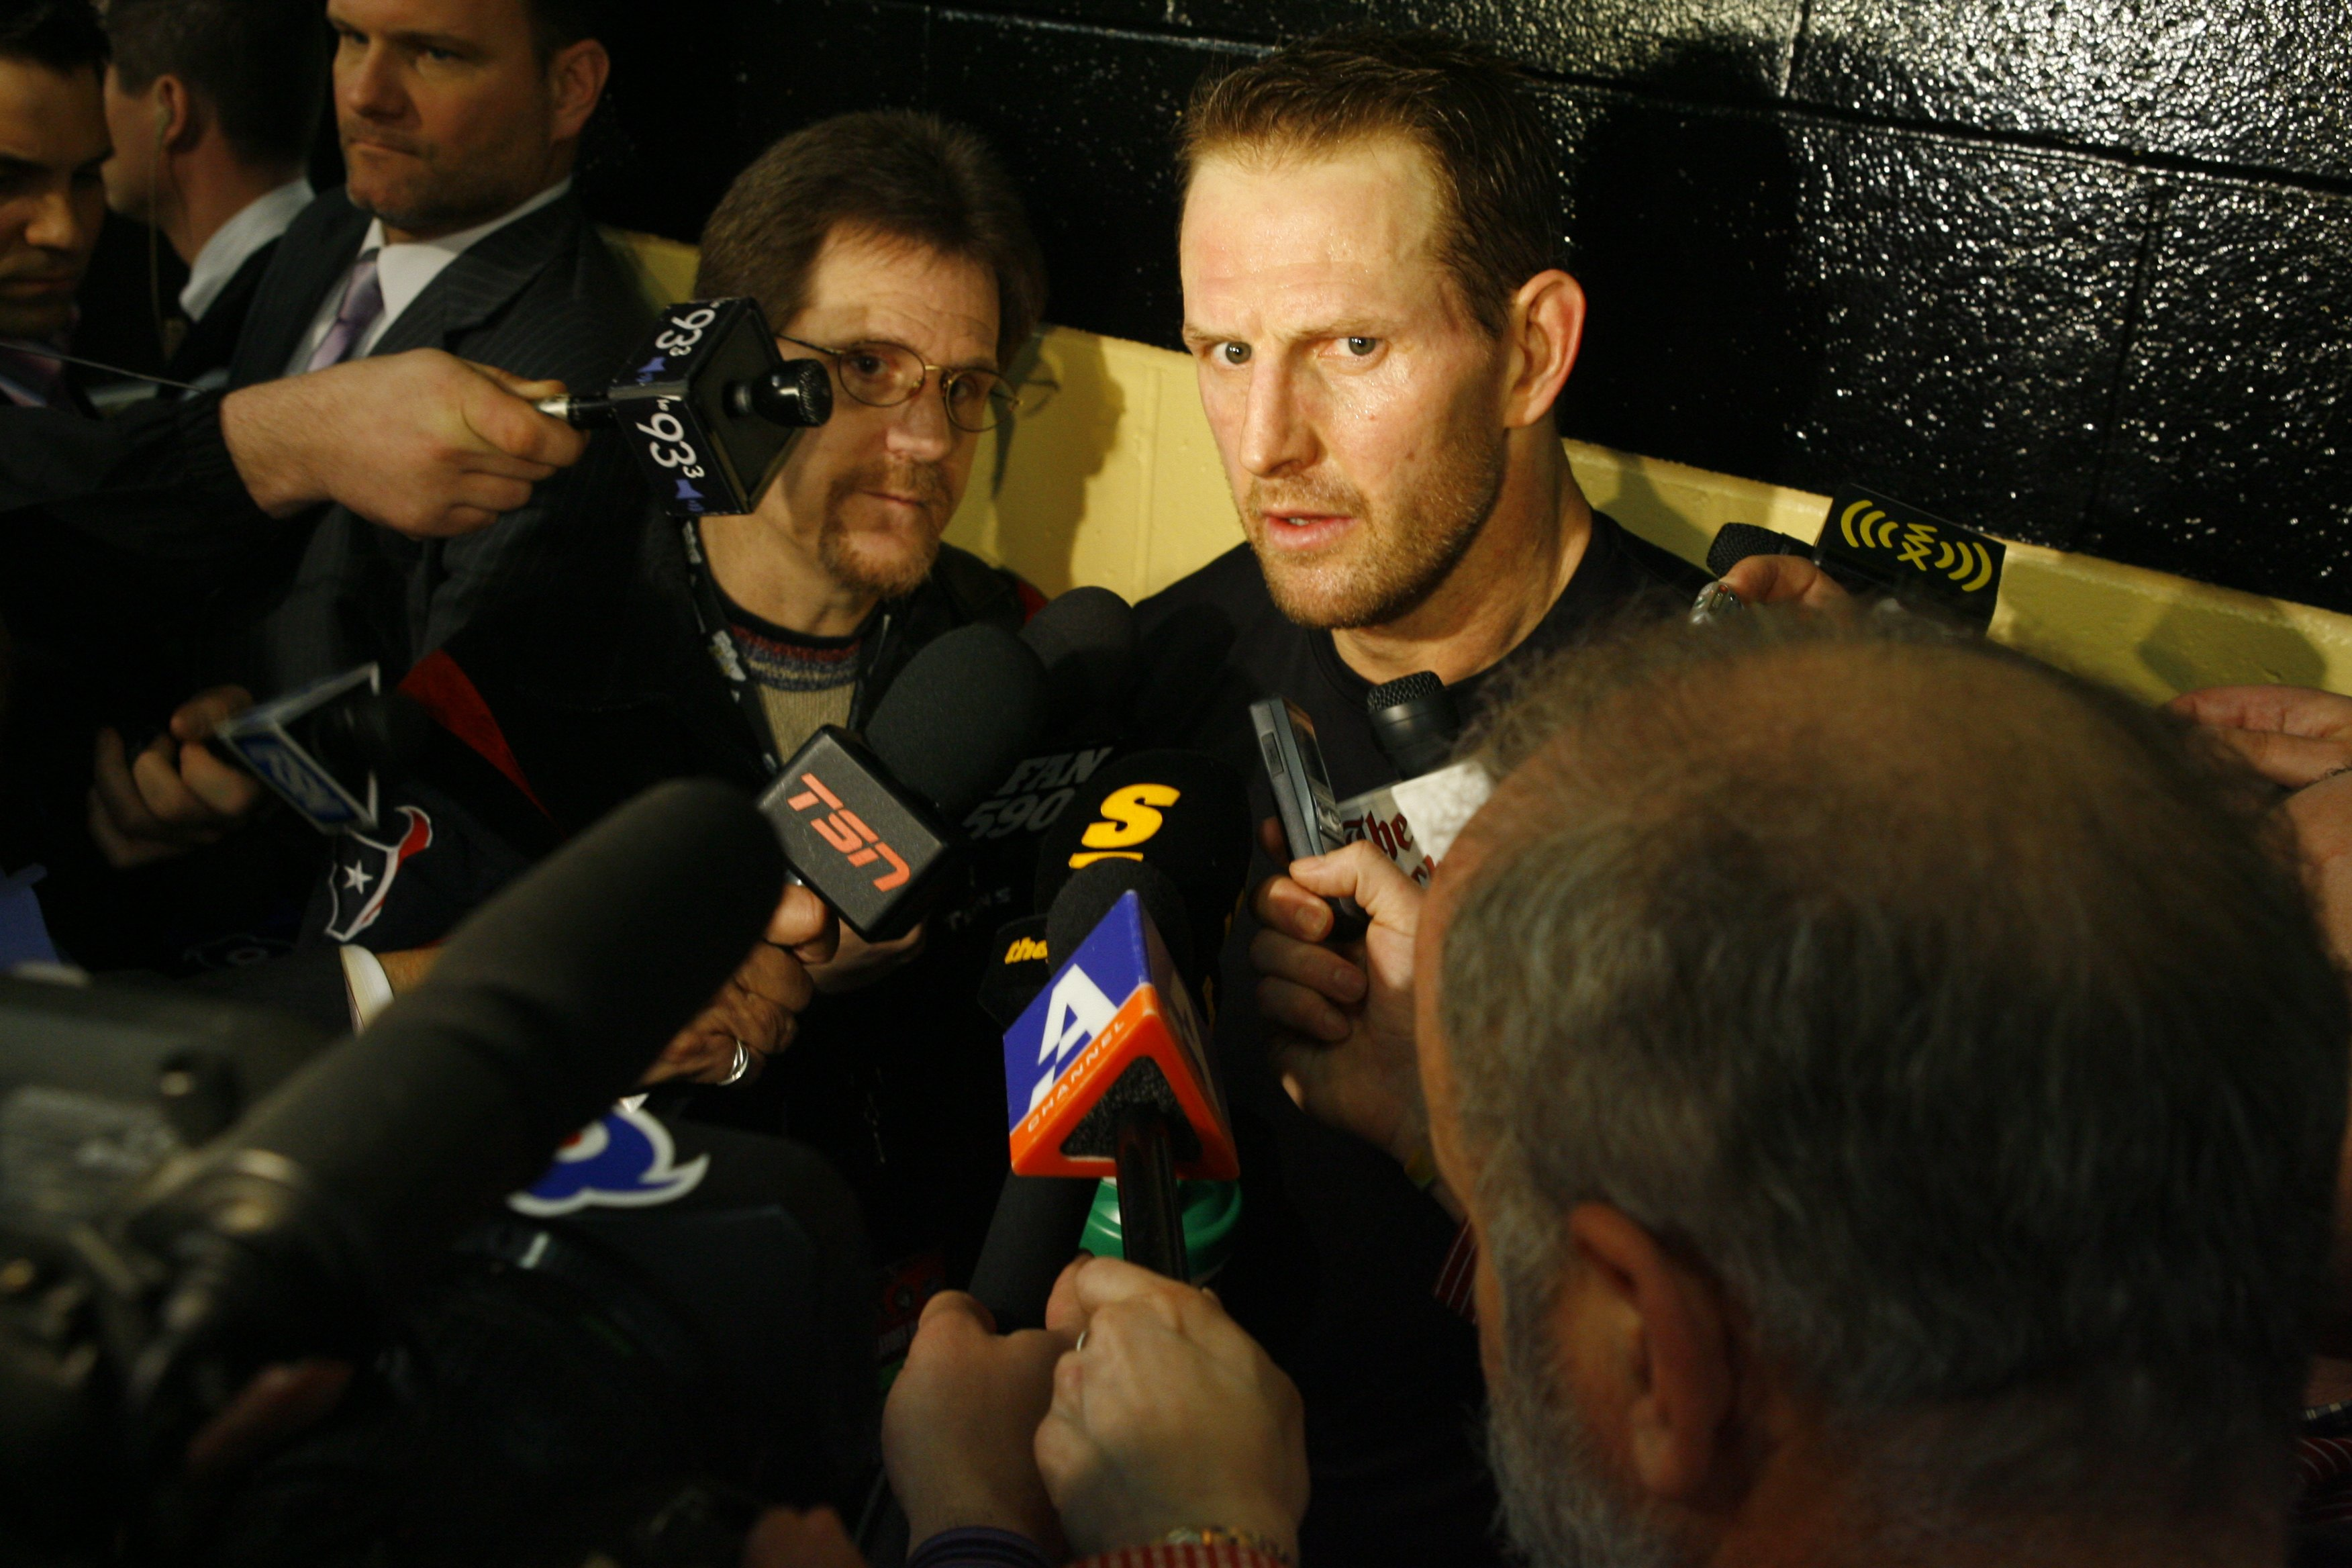 OTTAWA - APRIL 14:  Gary Roberts #10 of the Pittsburgh Penguins talks to reporters following the game against the Ottawa Senators in Game 2 of the 2007 Eastern Conference Quarterfinals on April 14, 2007 at Scotiabank Place in Ottawa, Ontario, Canada. The